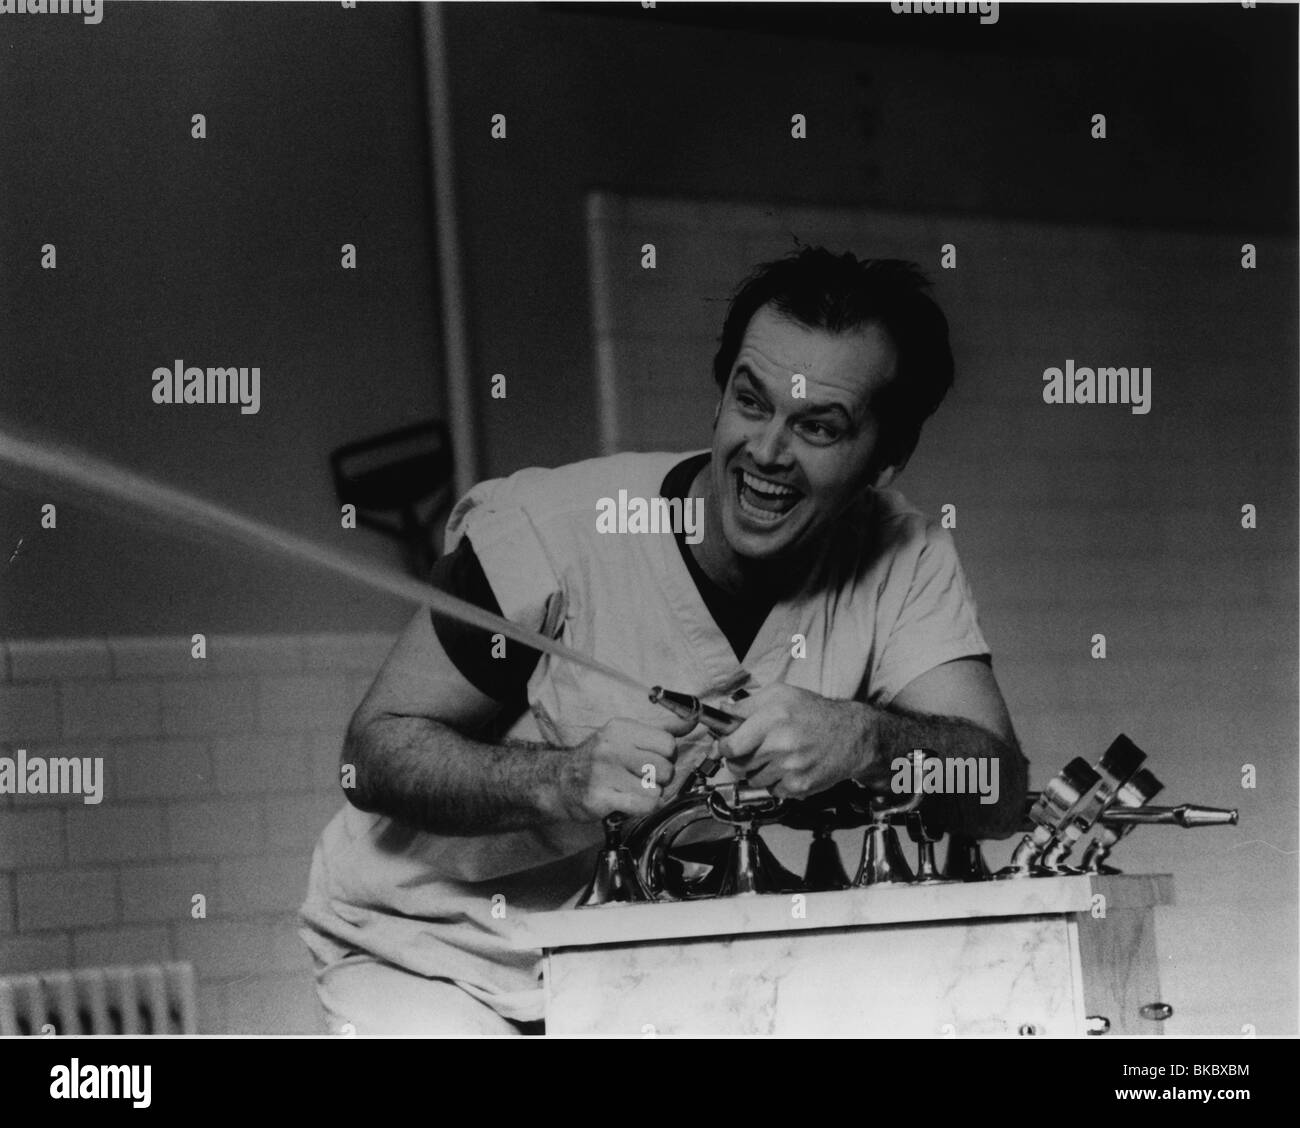 ONE FLEW OVER THE CUCKOO'S NEST(1975) JACK NICHOLSON OFC 001P - Stock Image